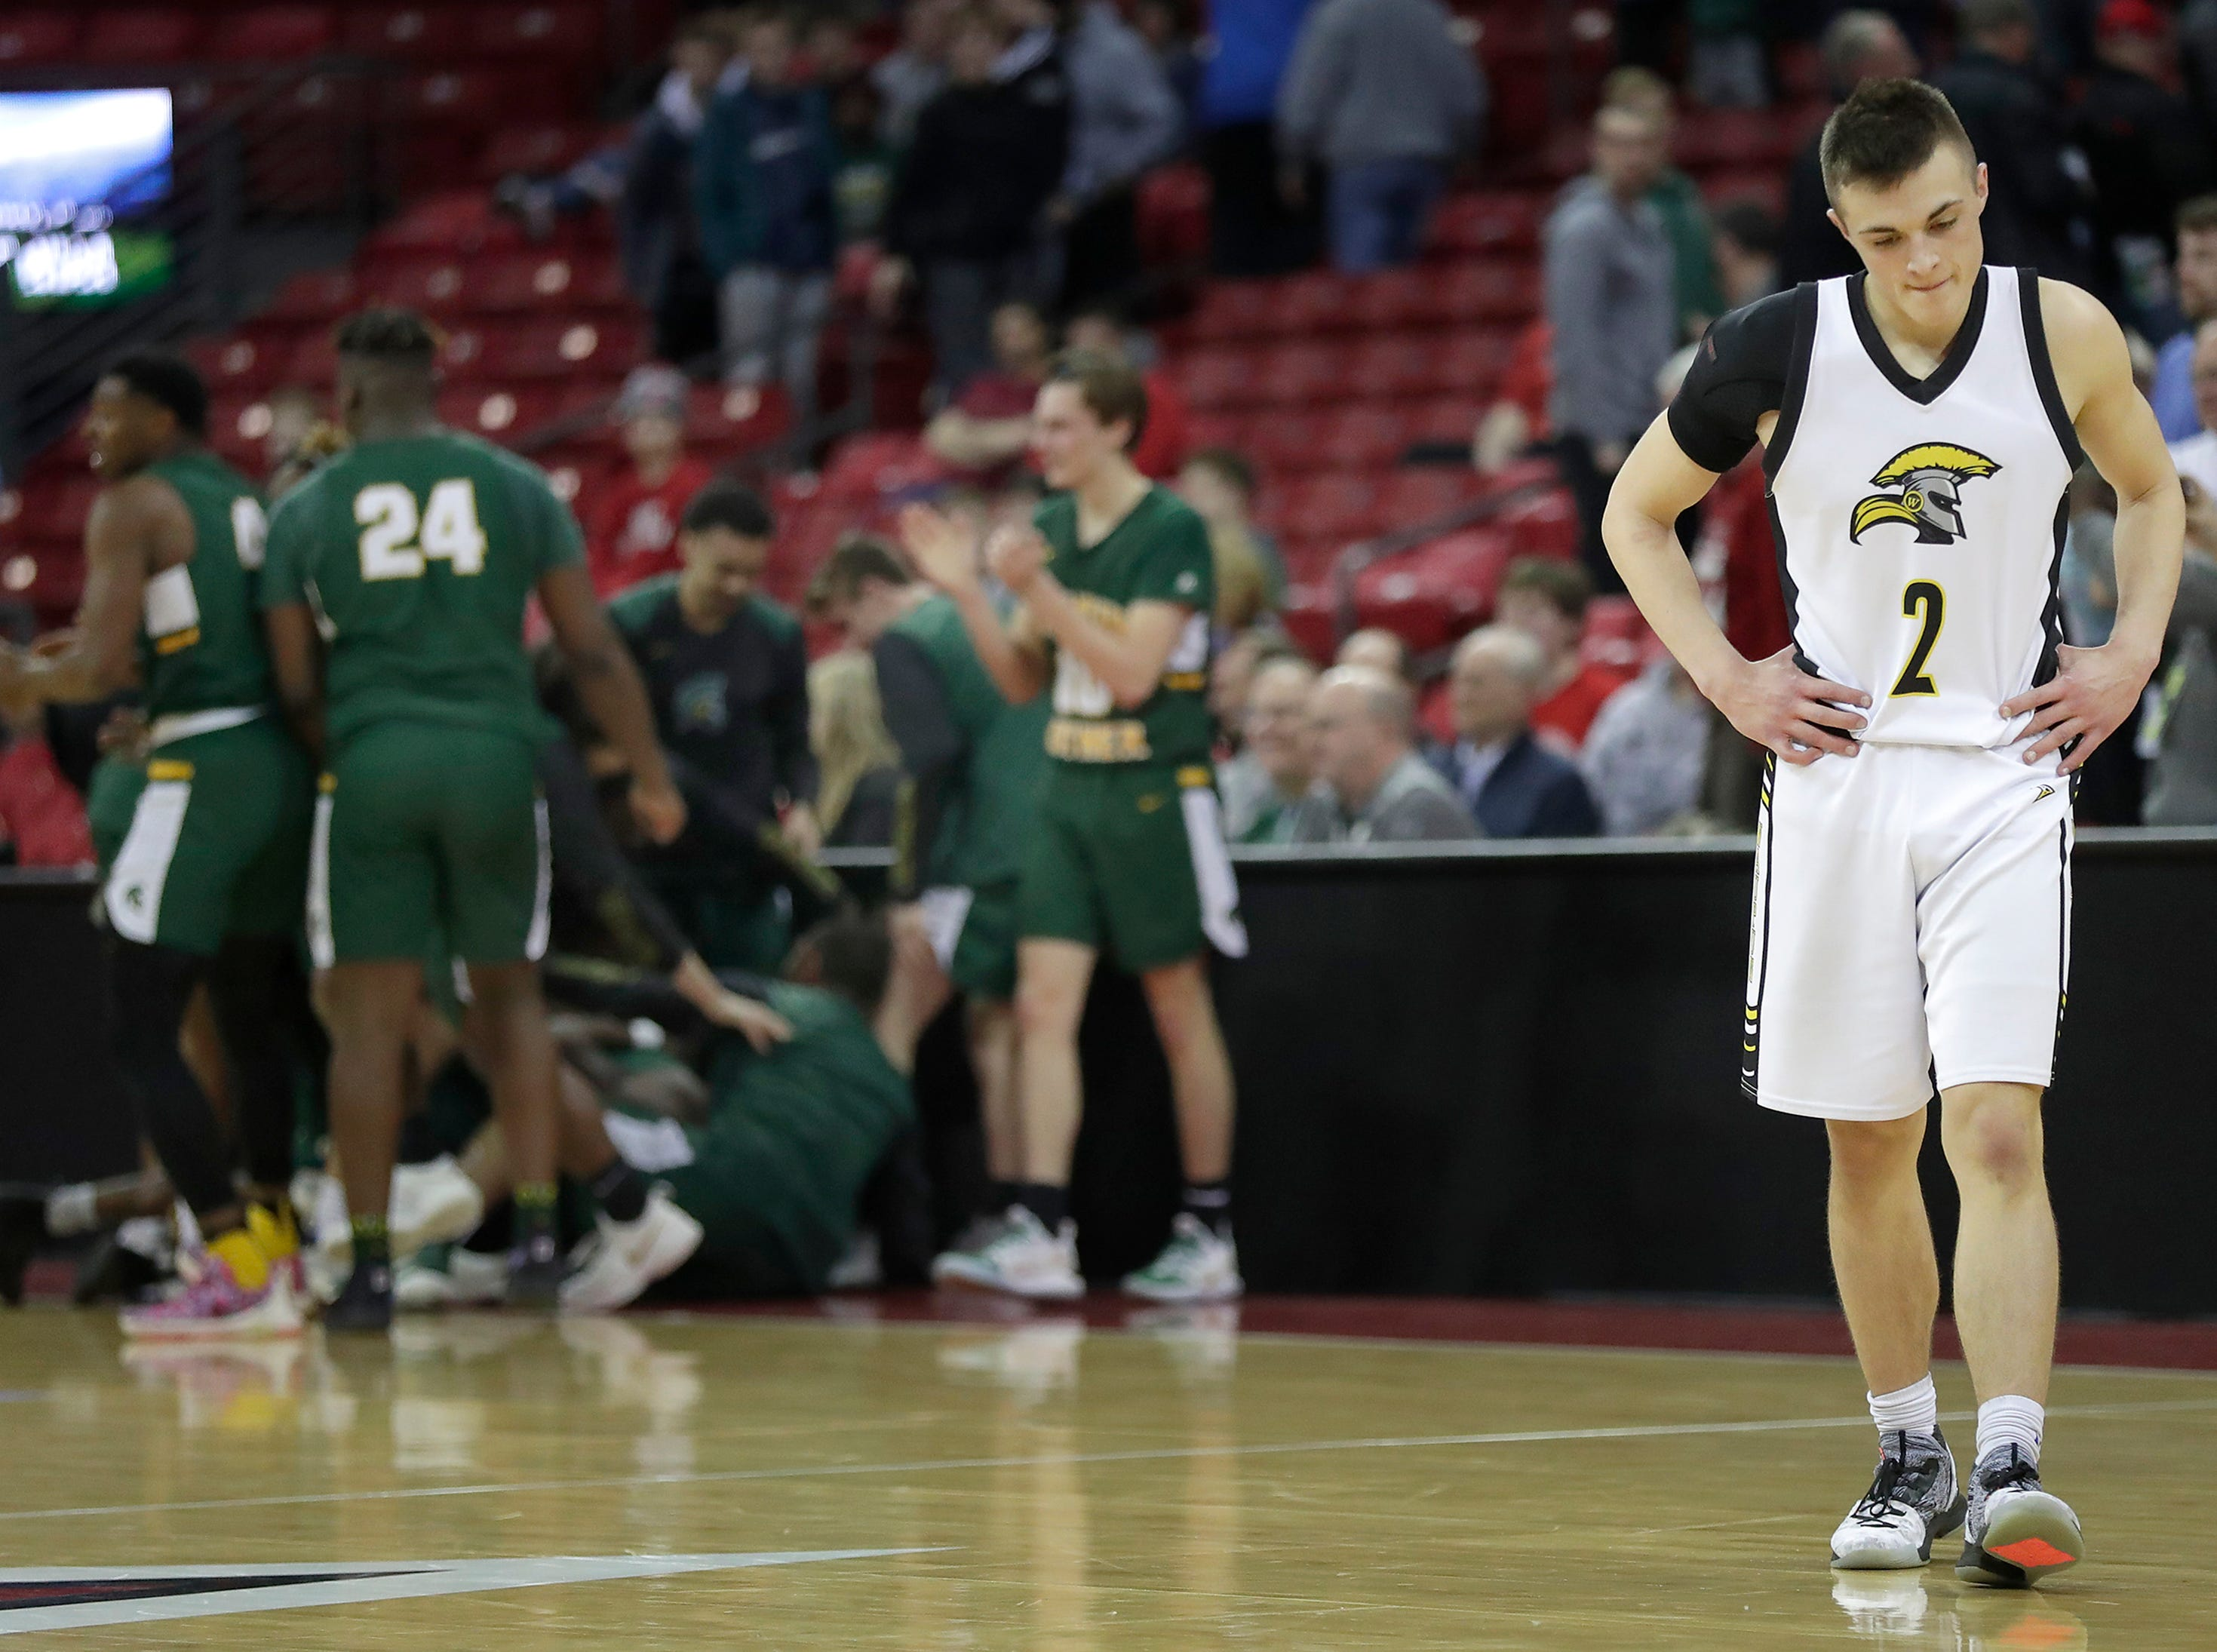 Waupun High School's #2 Trevor VandeZande leaves the court after his team's loss to Martin Luther High School in the WIAA Division 3 boys basketball state championship game on Saturday, March 15, 2019, at the Kohl Center in Madison, Wis. Martin Luther defeated Waupun 58 to 49.Wm. Glasheen/USA TODAY NETWORK-Wisconsin.